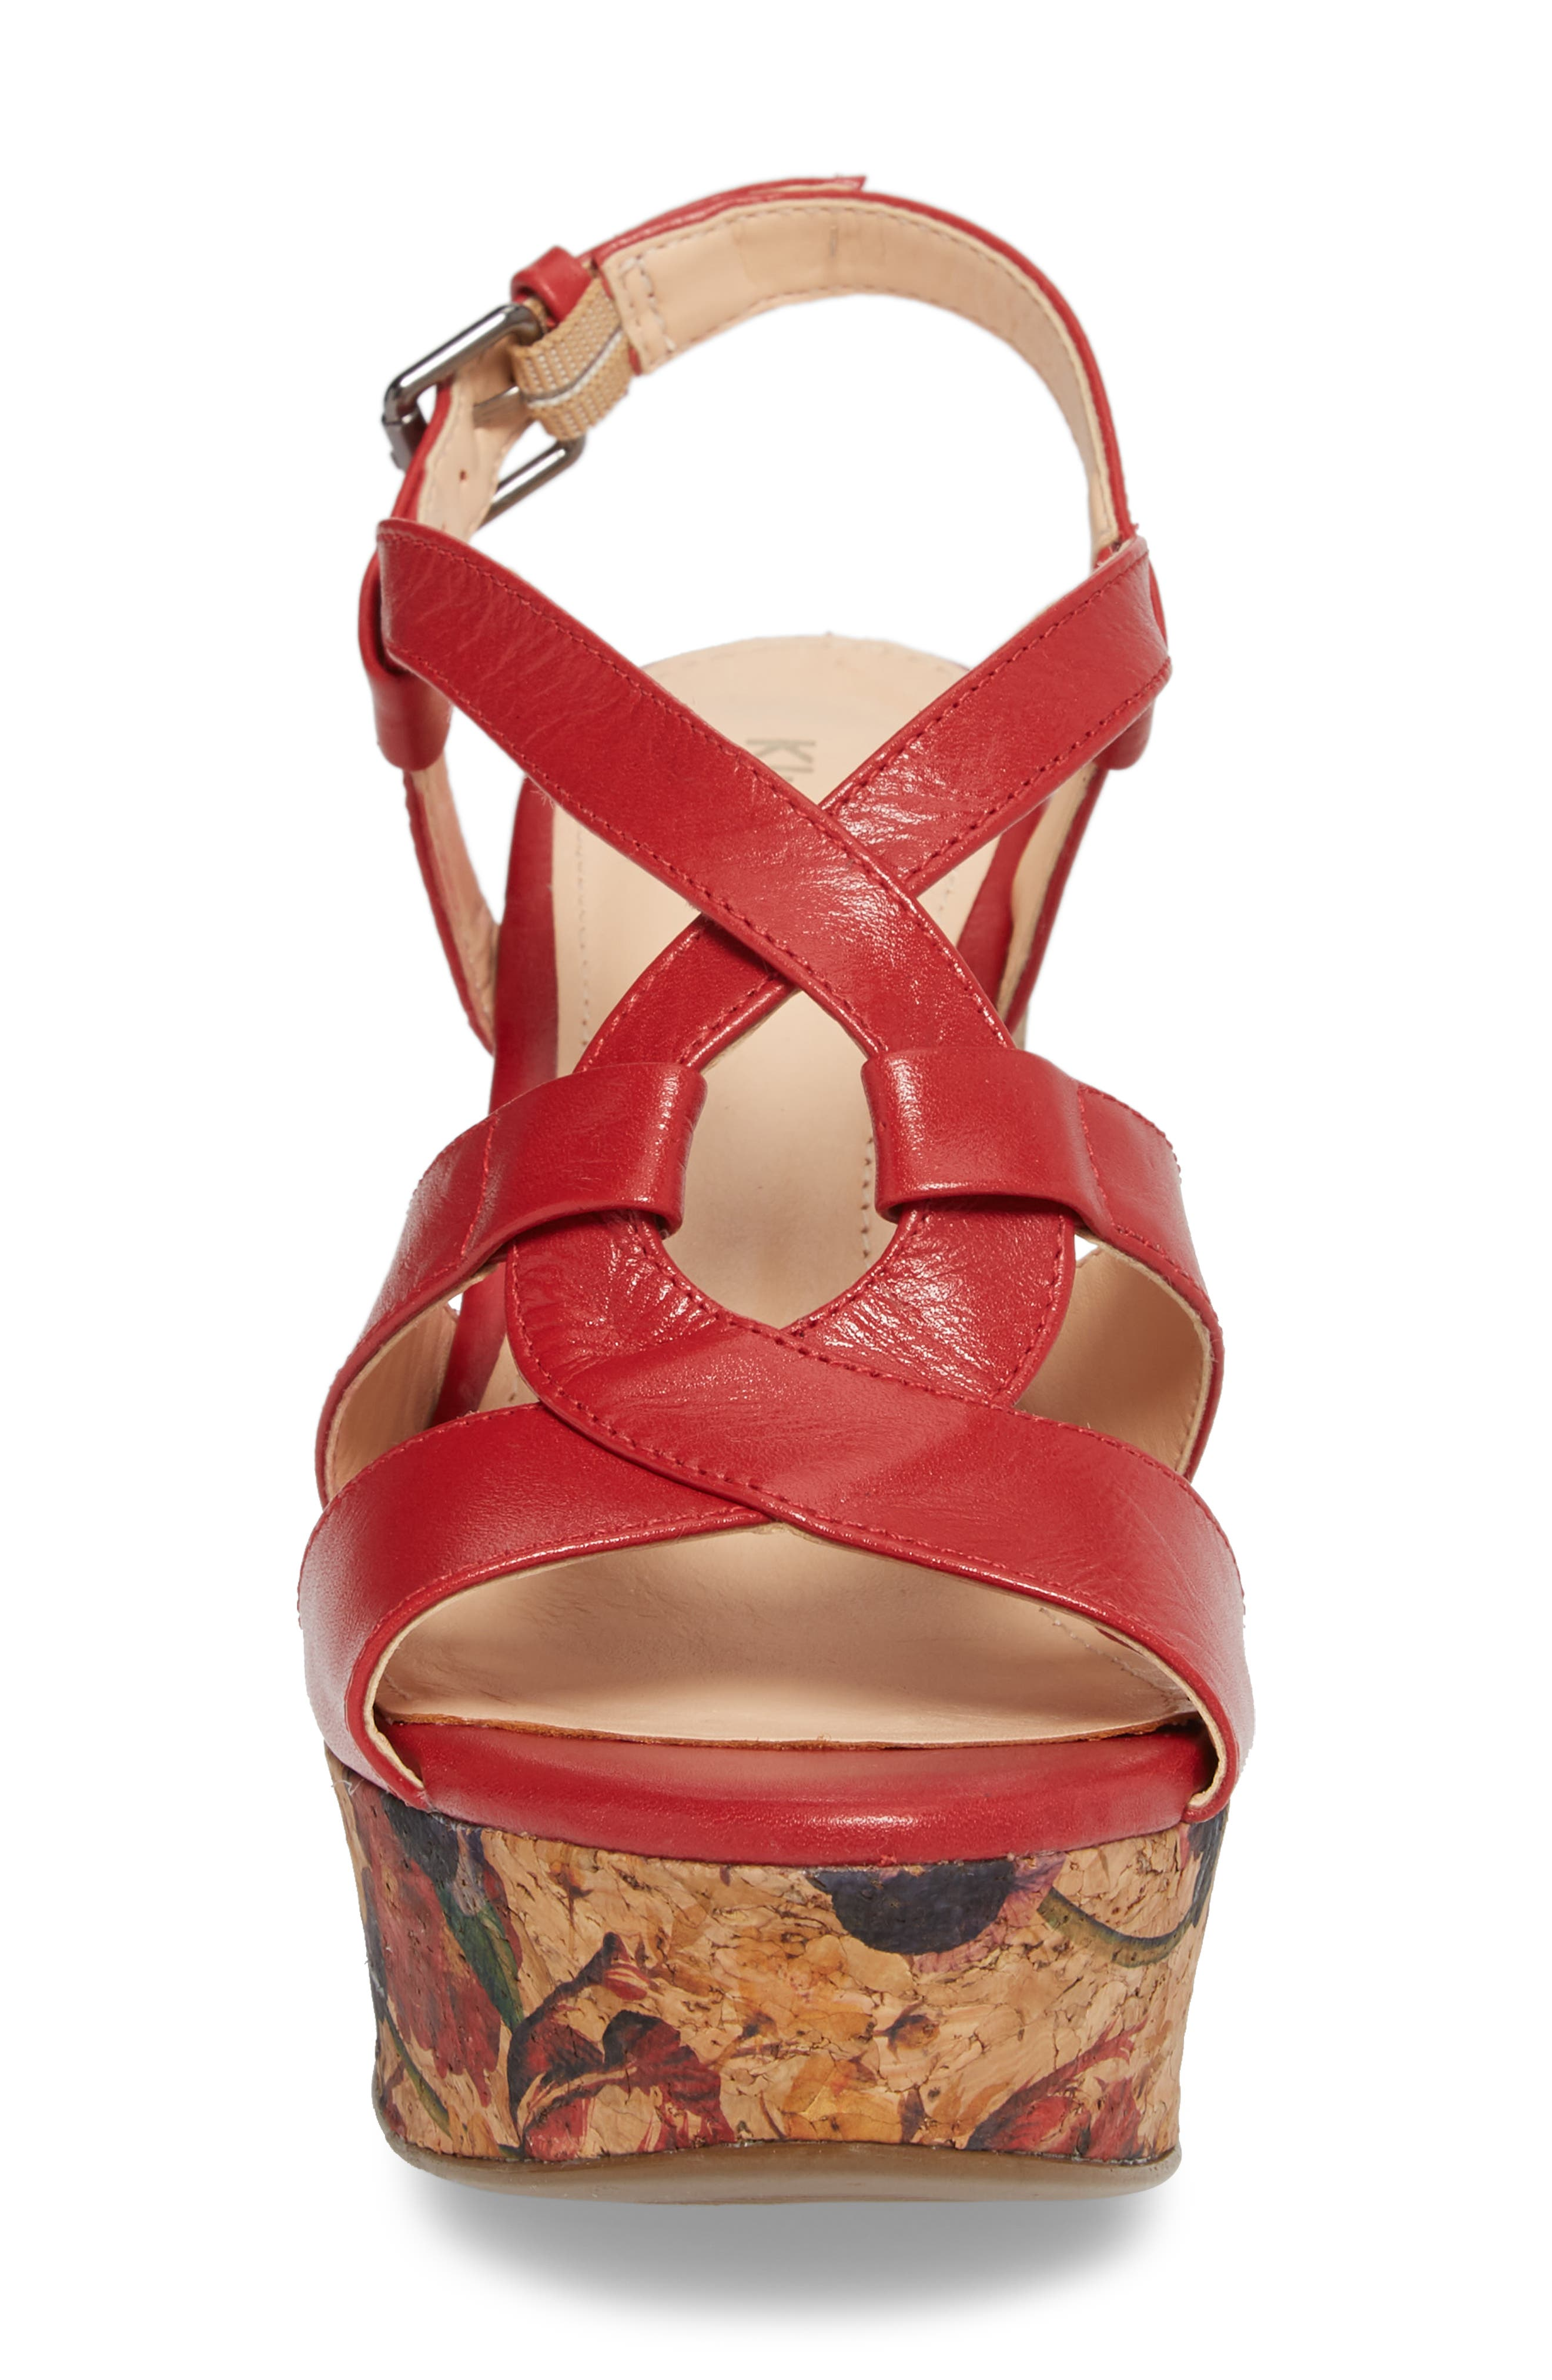 Victoria Platform Sandal,                             Alternate thumbnail 4, color,                             Red Leather